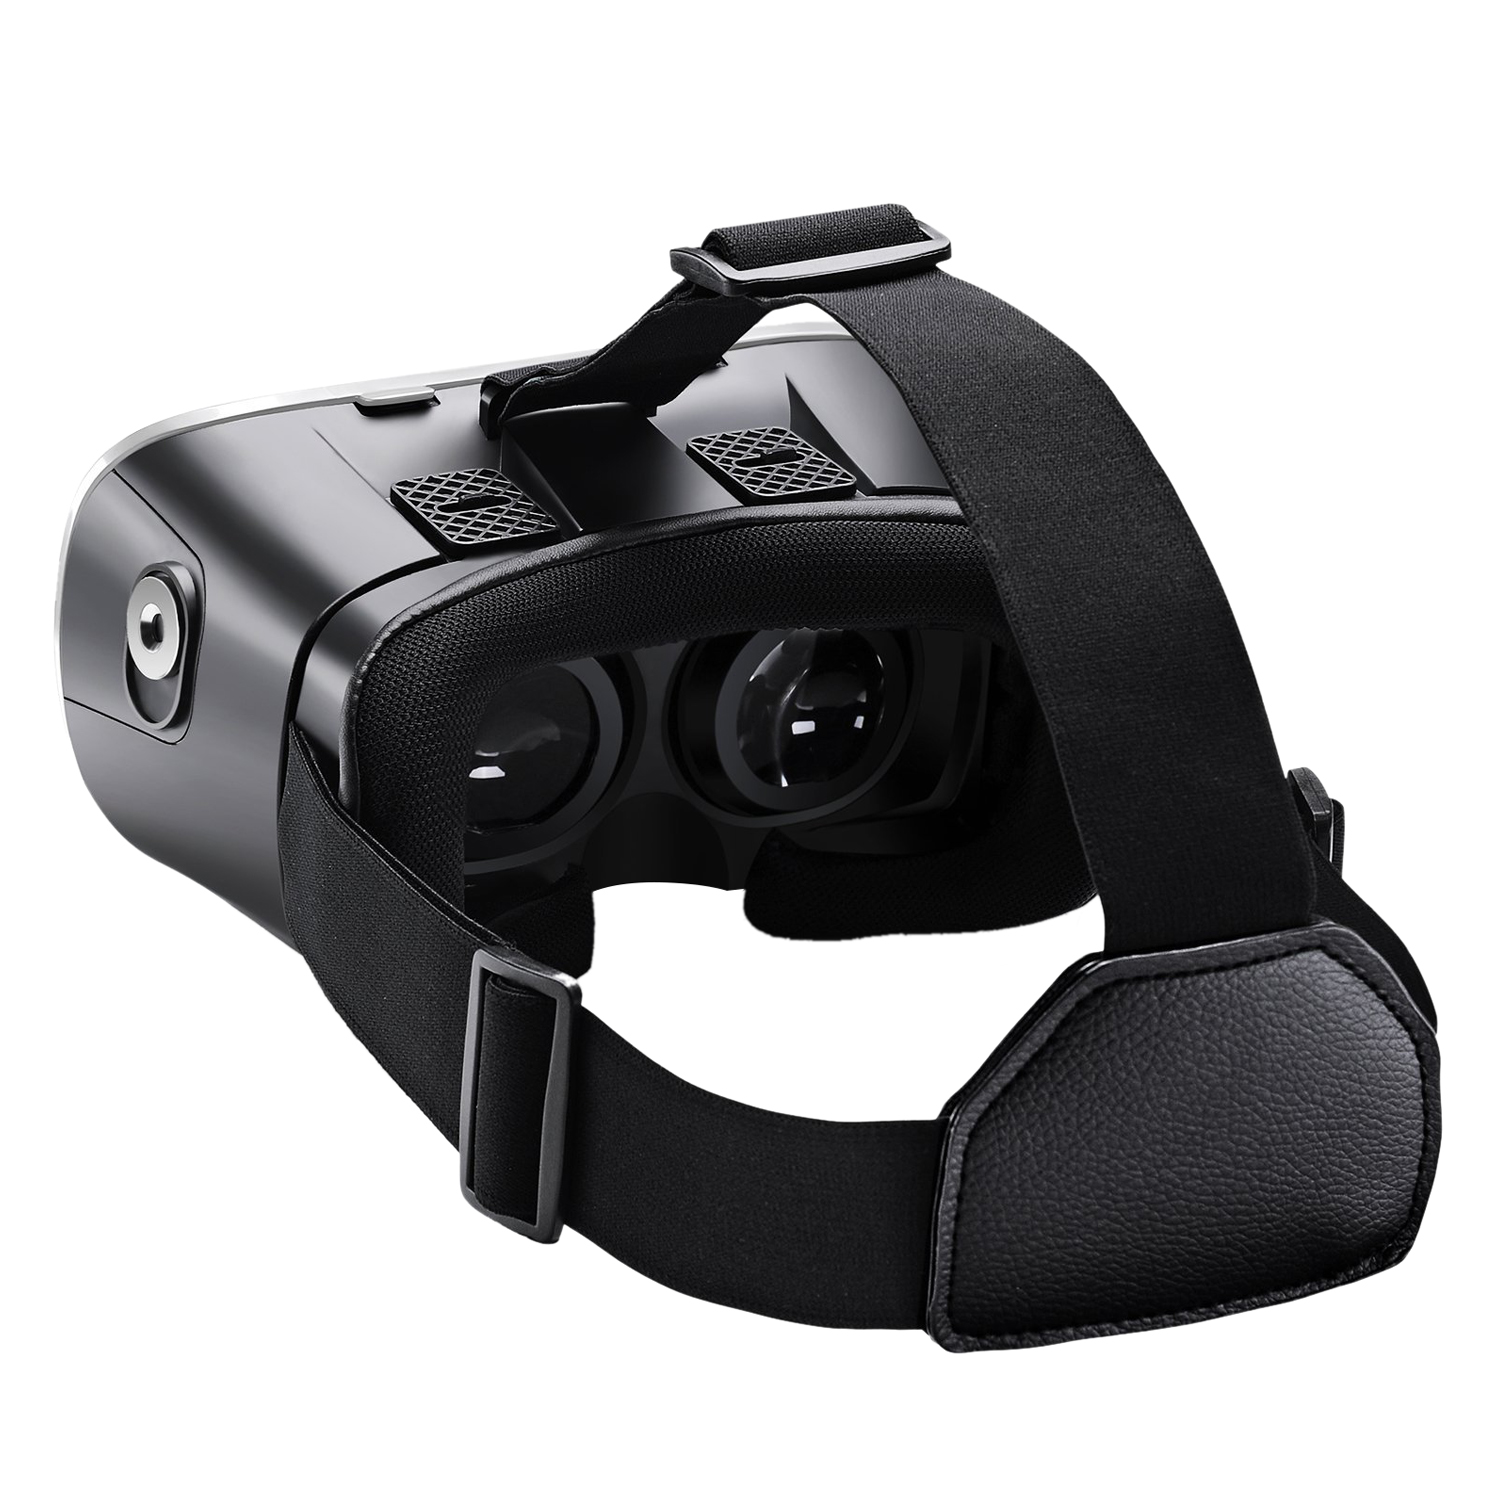 CES-Google Cardboard V2.0 Virtual Reality DIY 3D Glasses for 3.5-6